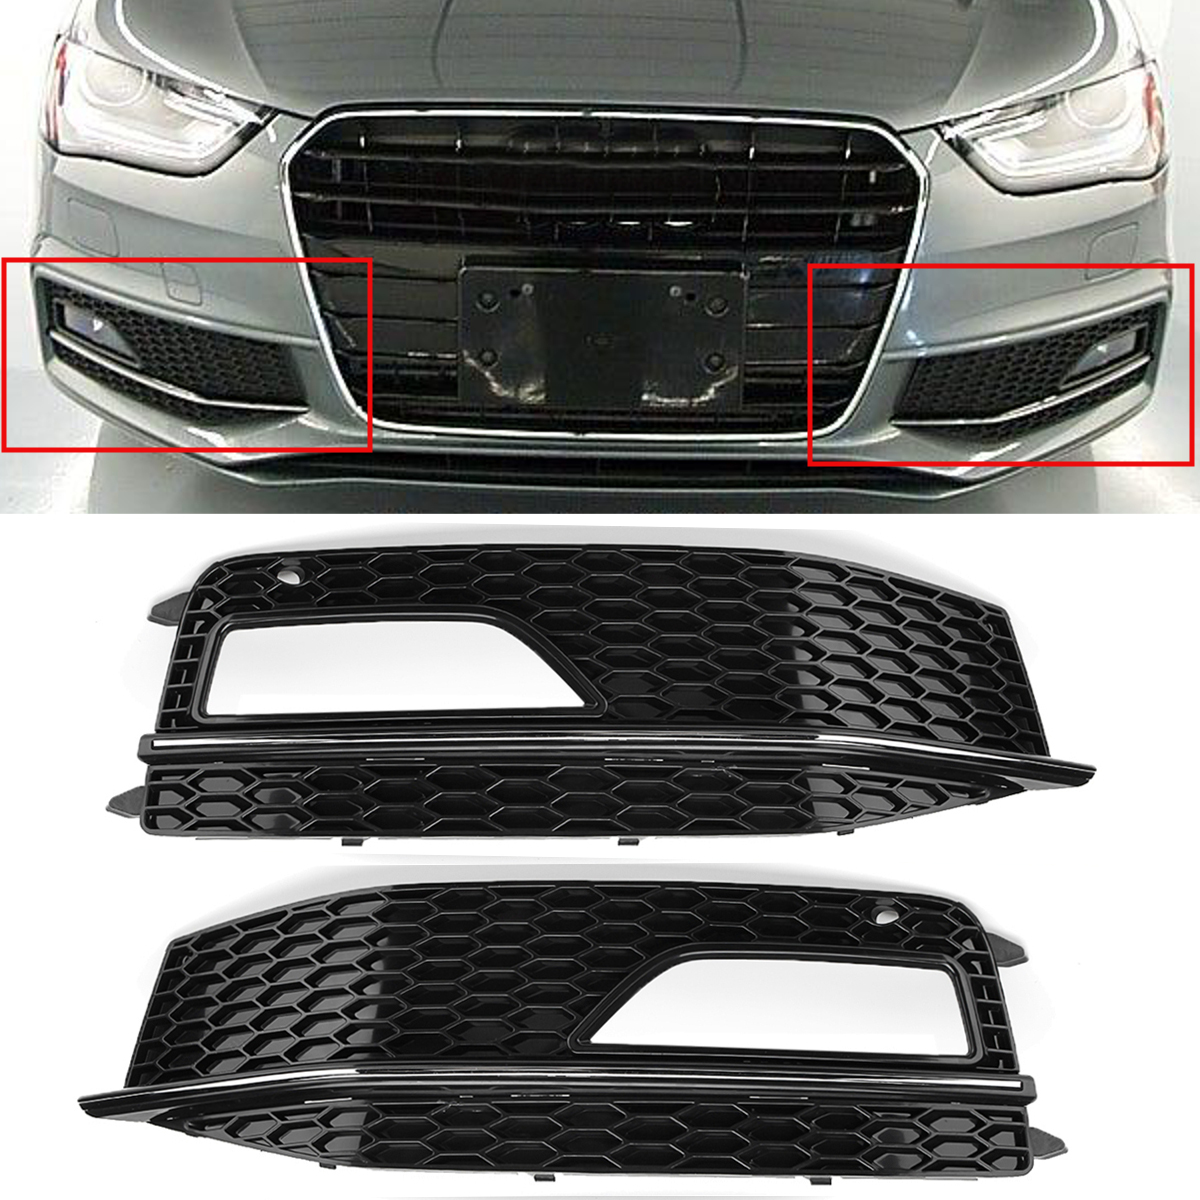 For Audi A4 B8 2012 2015 S4 S Line Car Front Grille Mesh